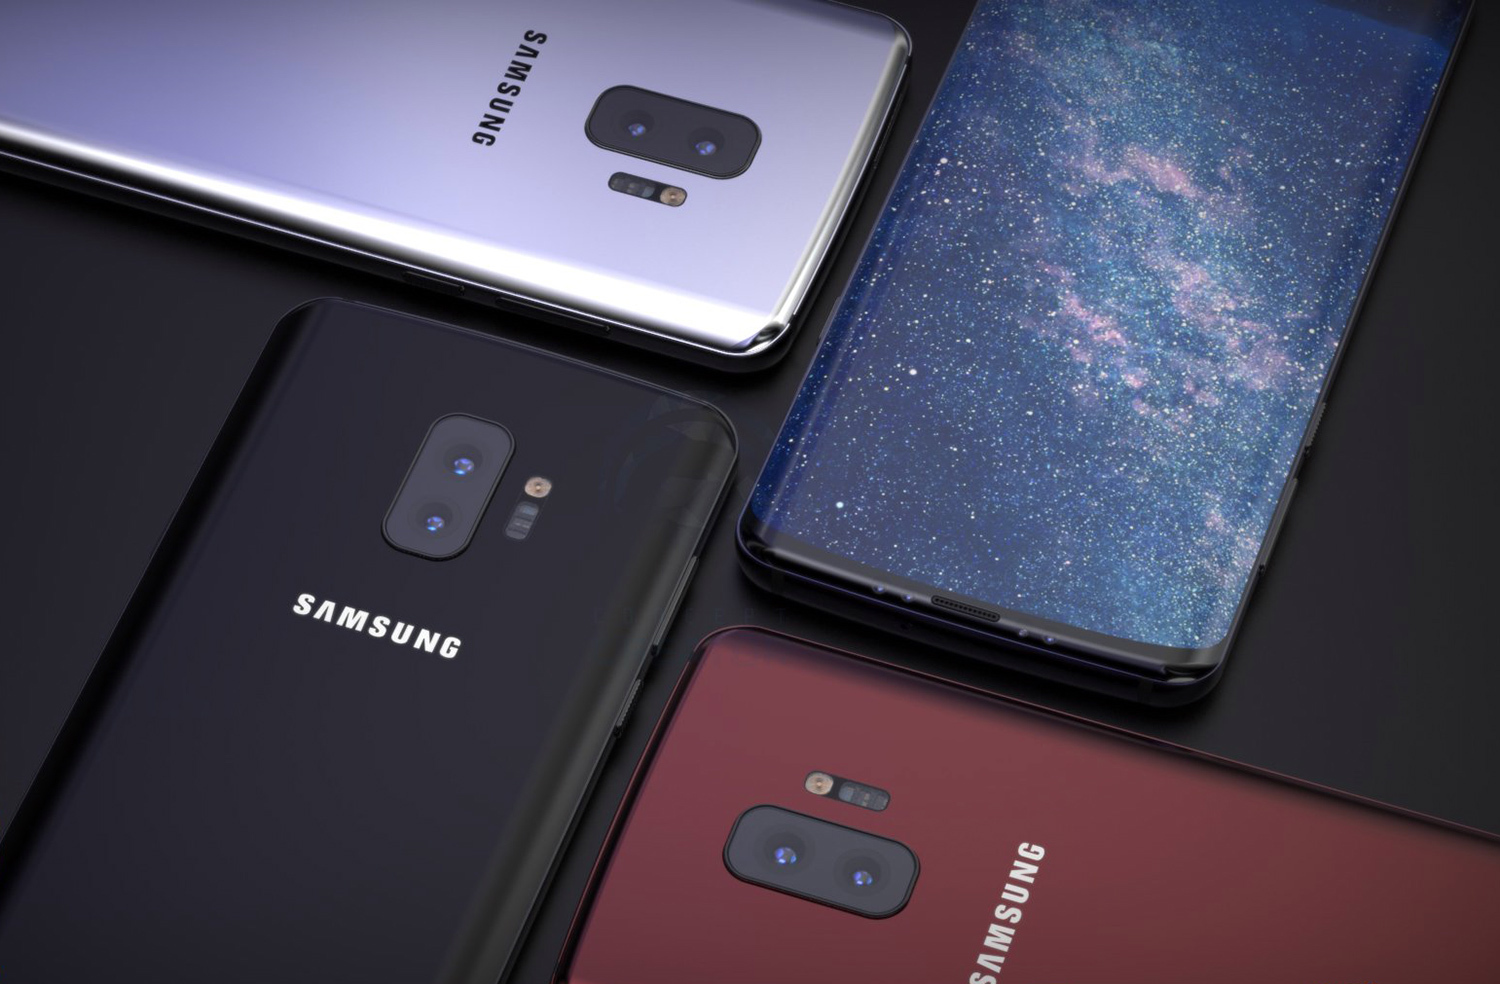 Samsusng Galaxy S10 updates, Huawei and Apple News Highlights